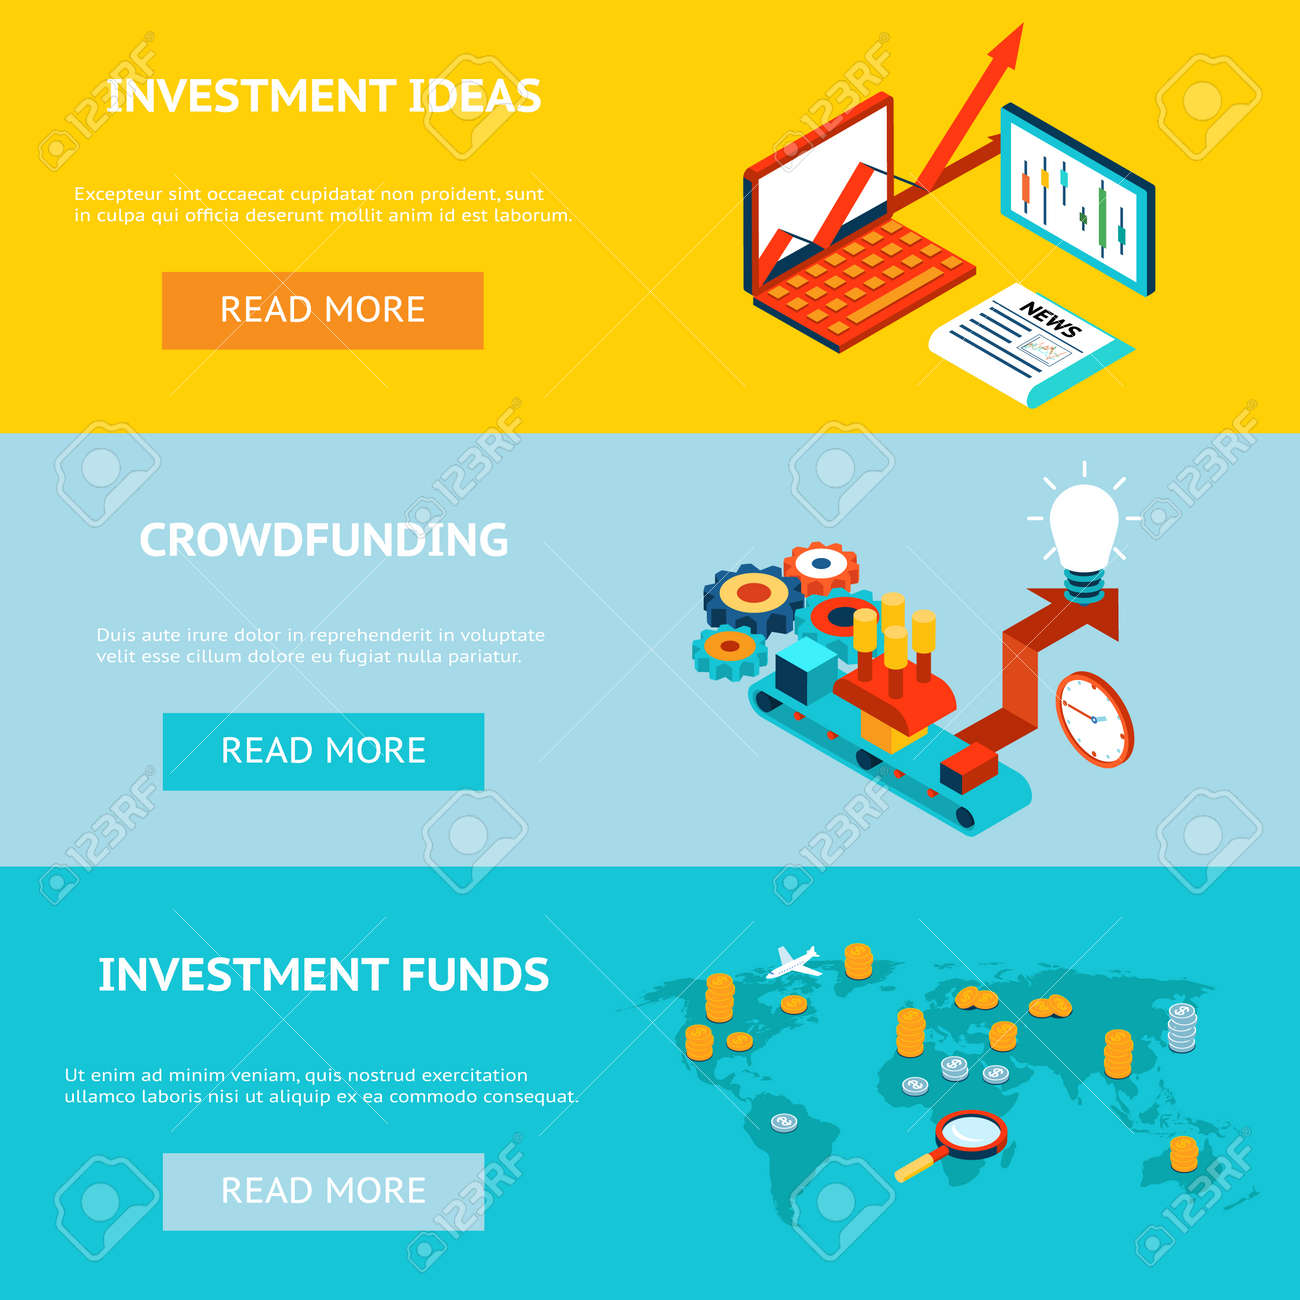 Business investment banners. Crowdfunding, investment ideas and investment funds. Concept strategy, marketing and funding, investor financial, vector illustration - 166997734